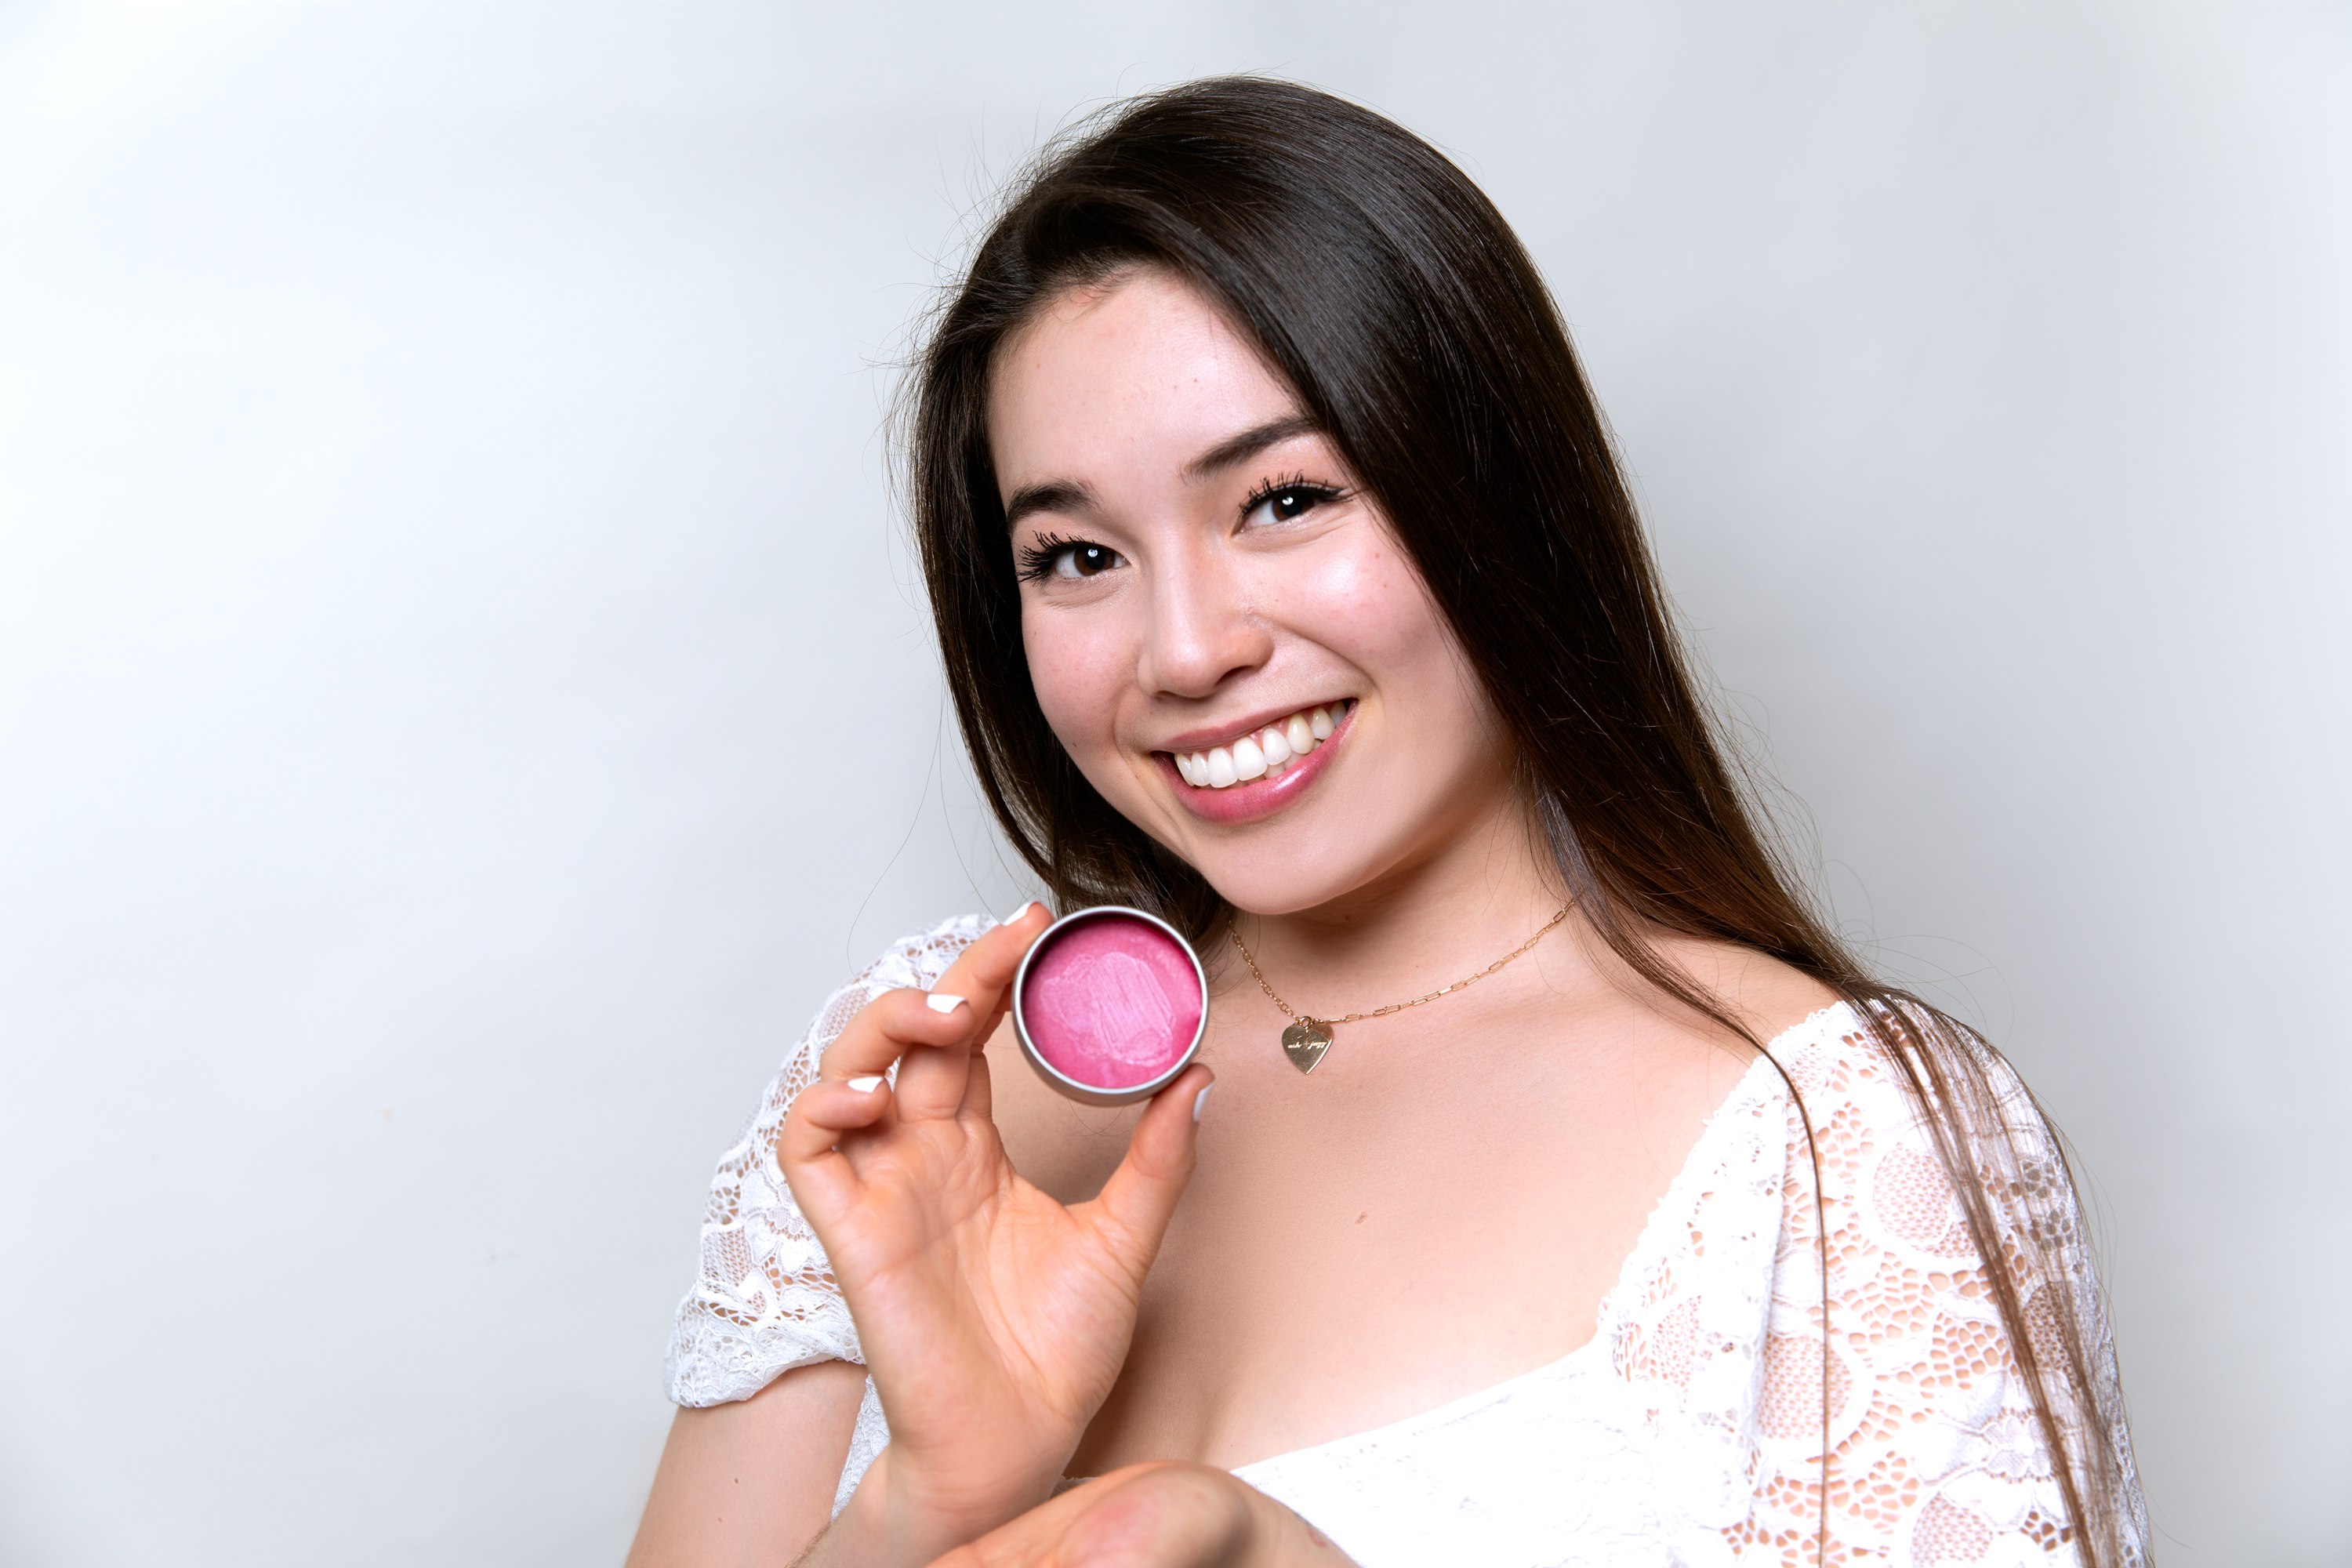 A woman smiling and showcasing a plastic-free packaged lip balm.